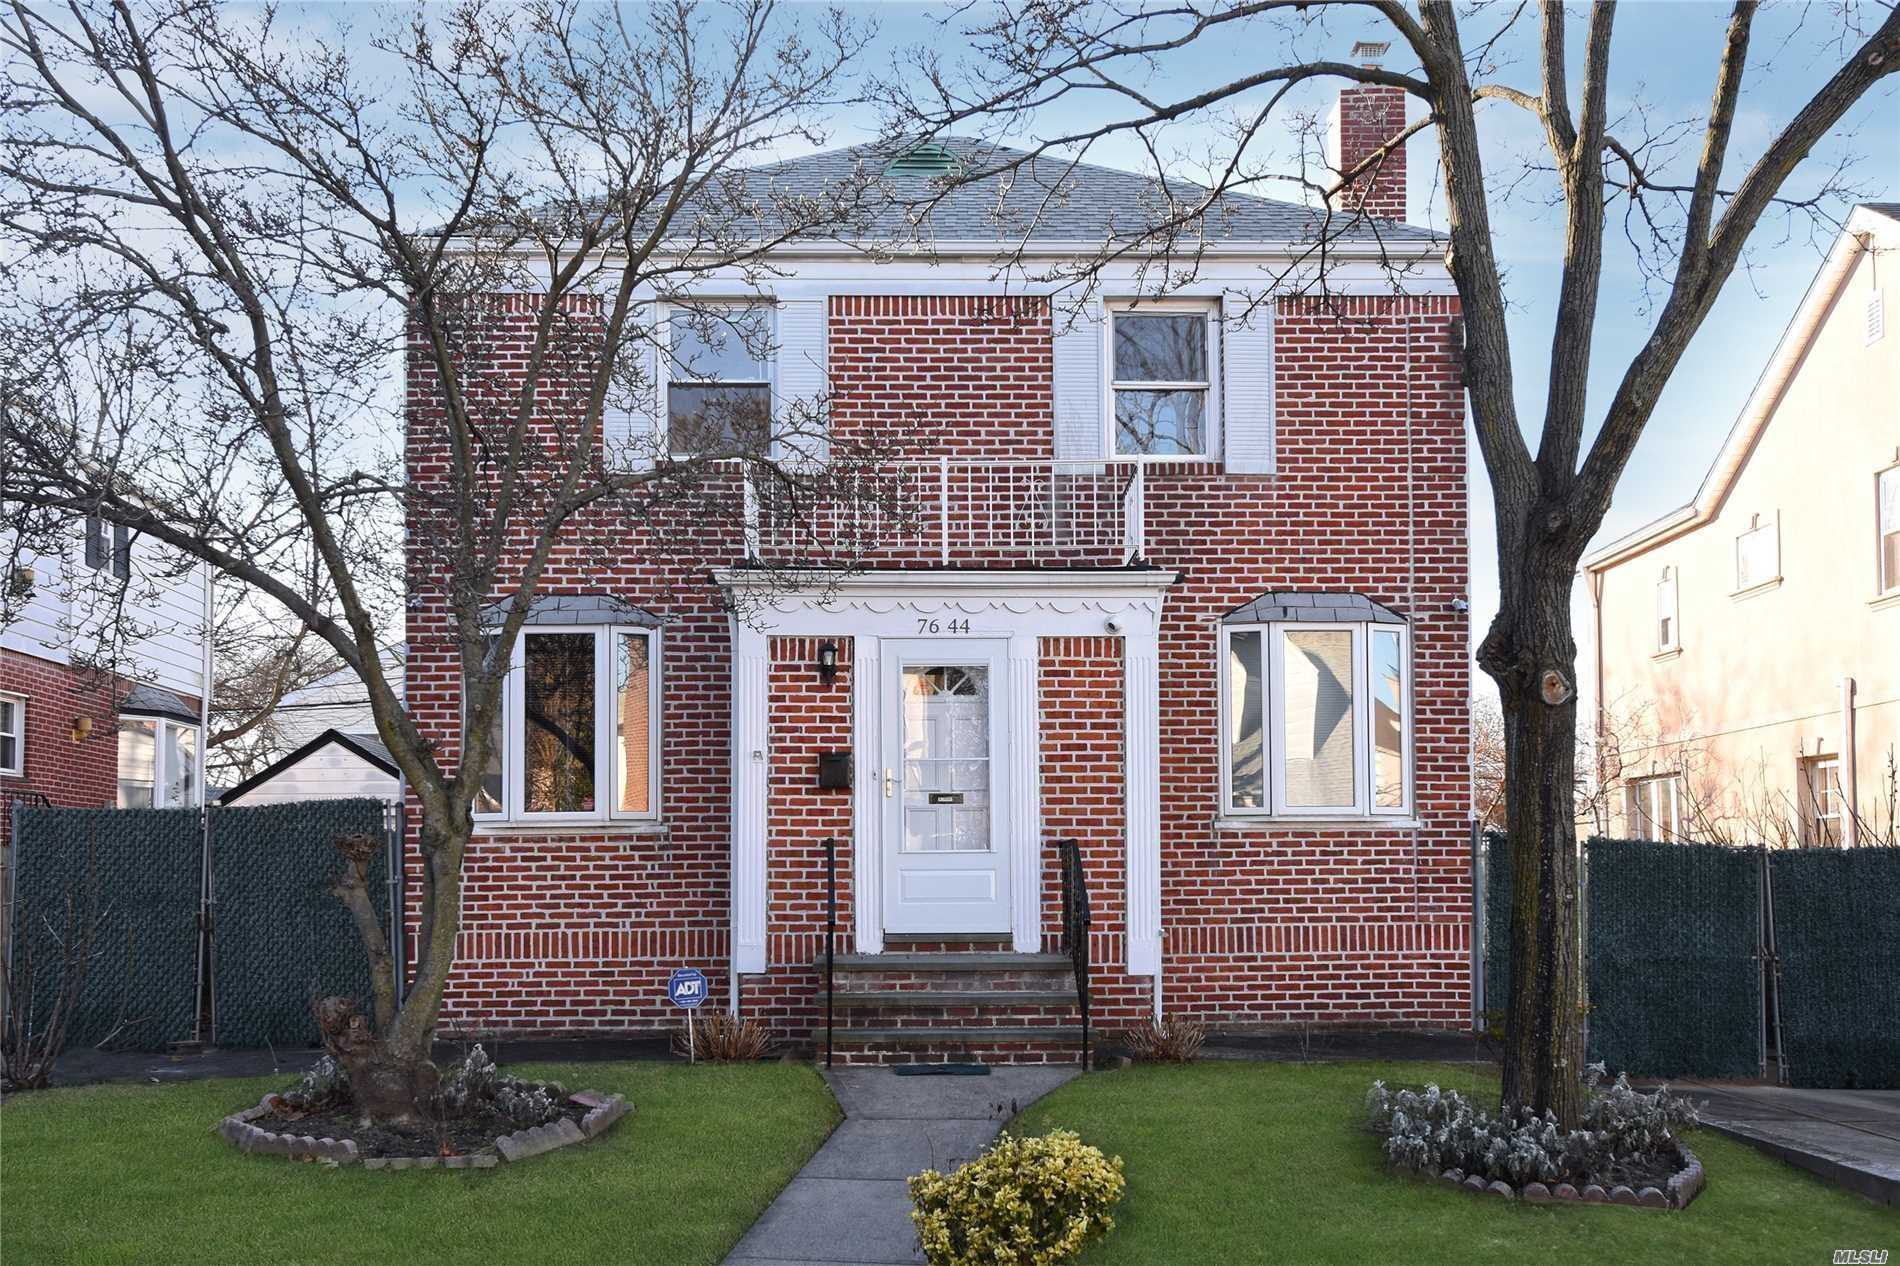 Step Into This Fully Renovated House Located In The Heart Of Fresh Meadows. This Home Is Situated On An Oversized Lot. 3 Bedrooms 2.5 Bathrooms And A Family Room. Full Finished Basement.